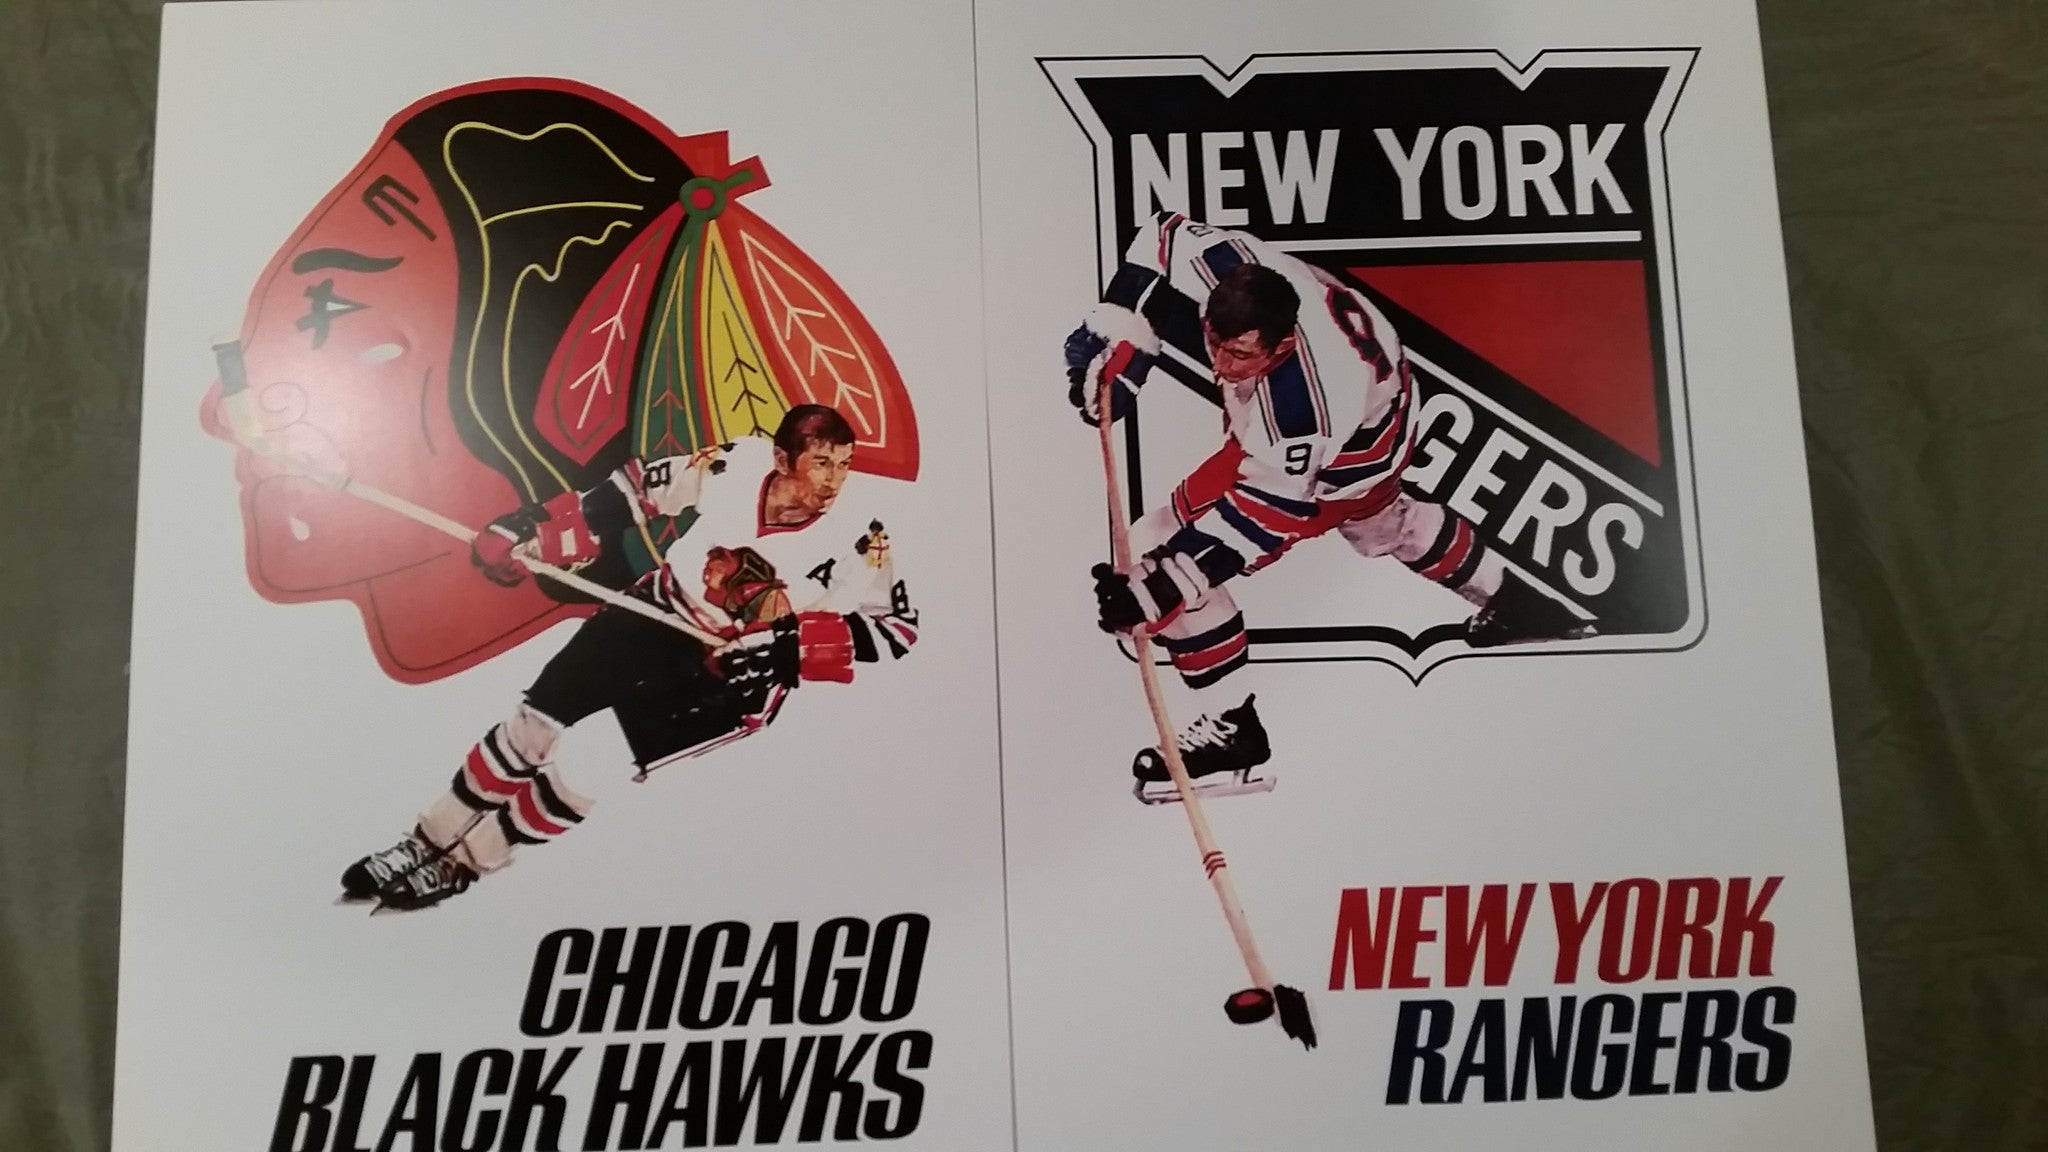 e3264854275 Lot-of-Vintage-NHL-Posters-1968-1972-Original-6 – Vintage Sports Items